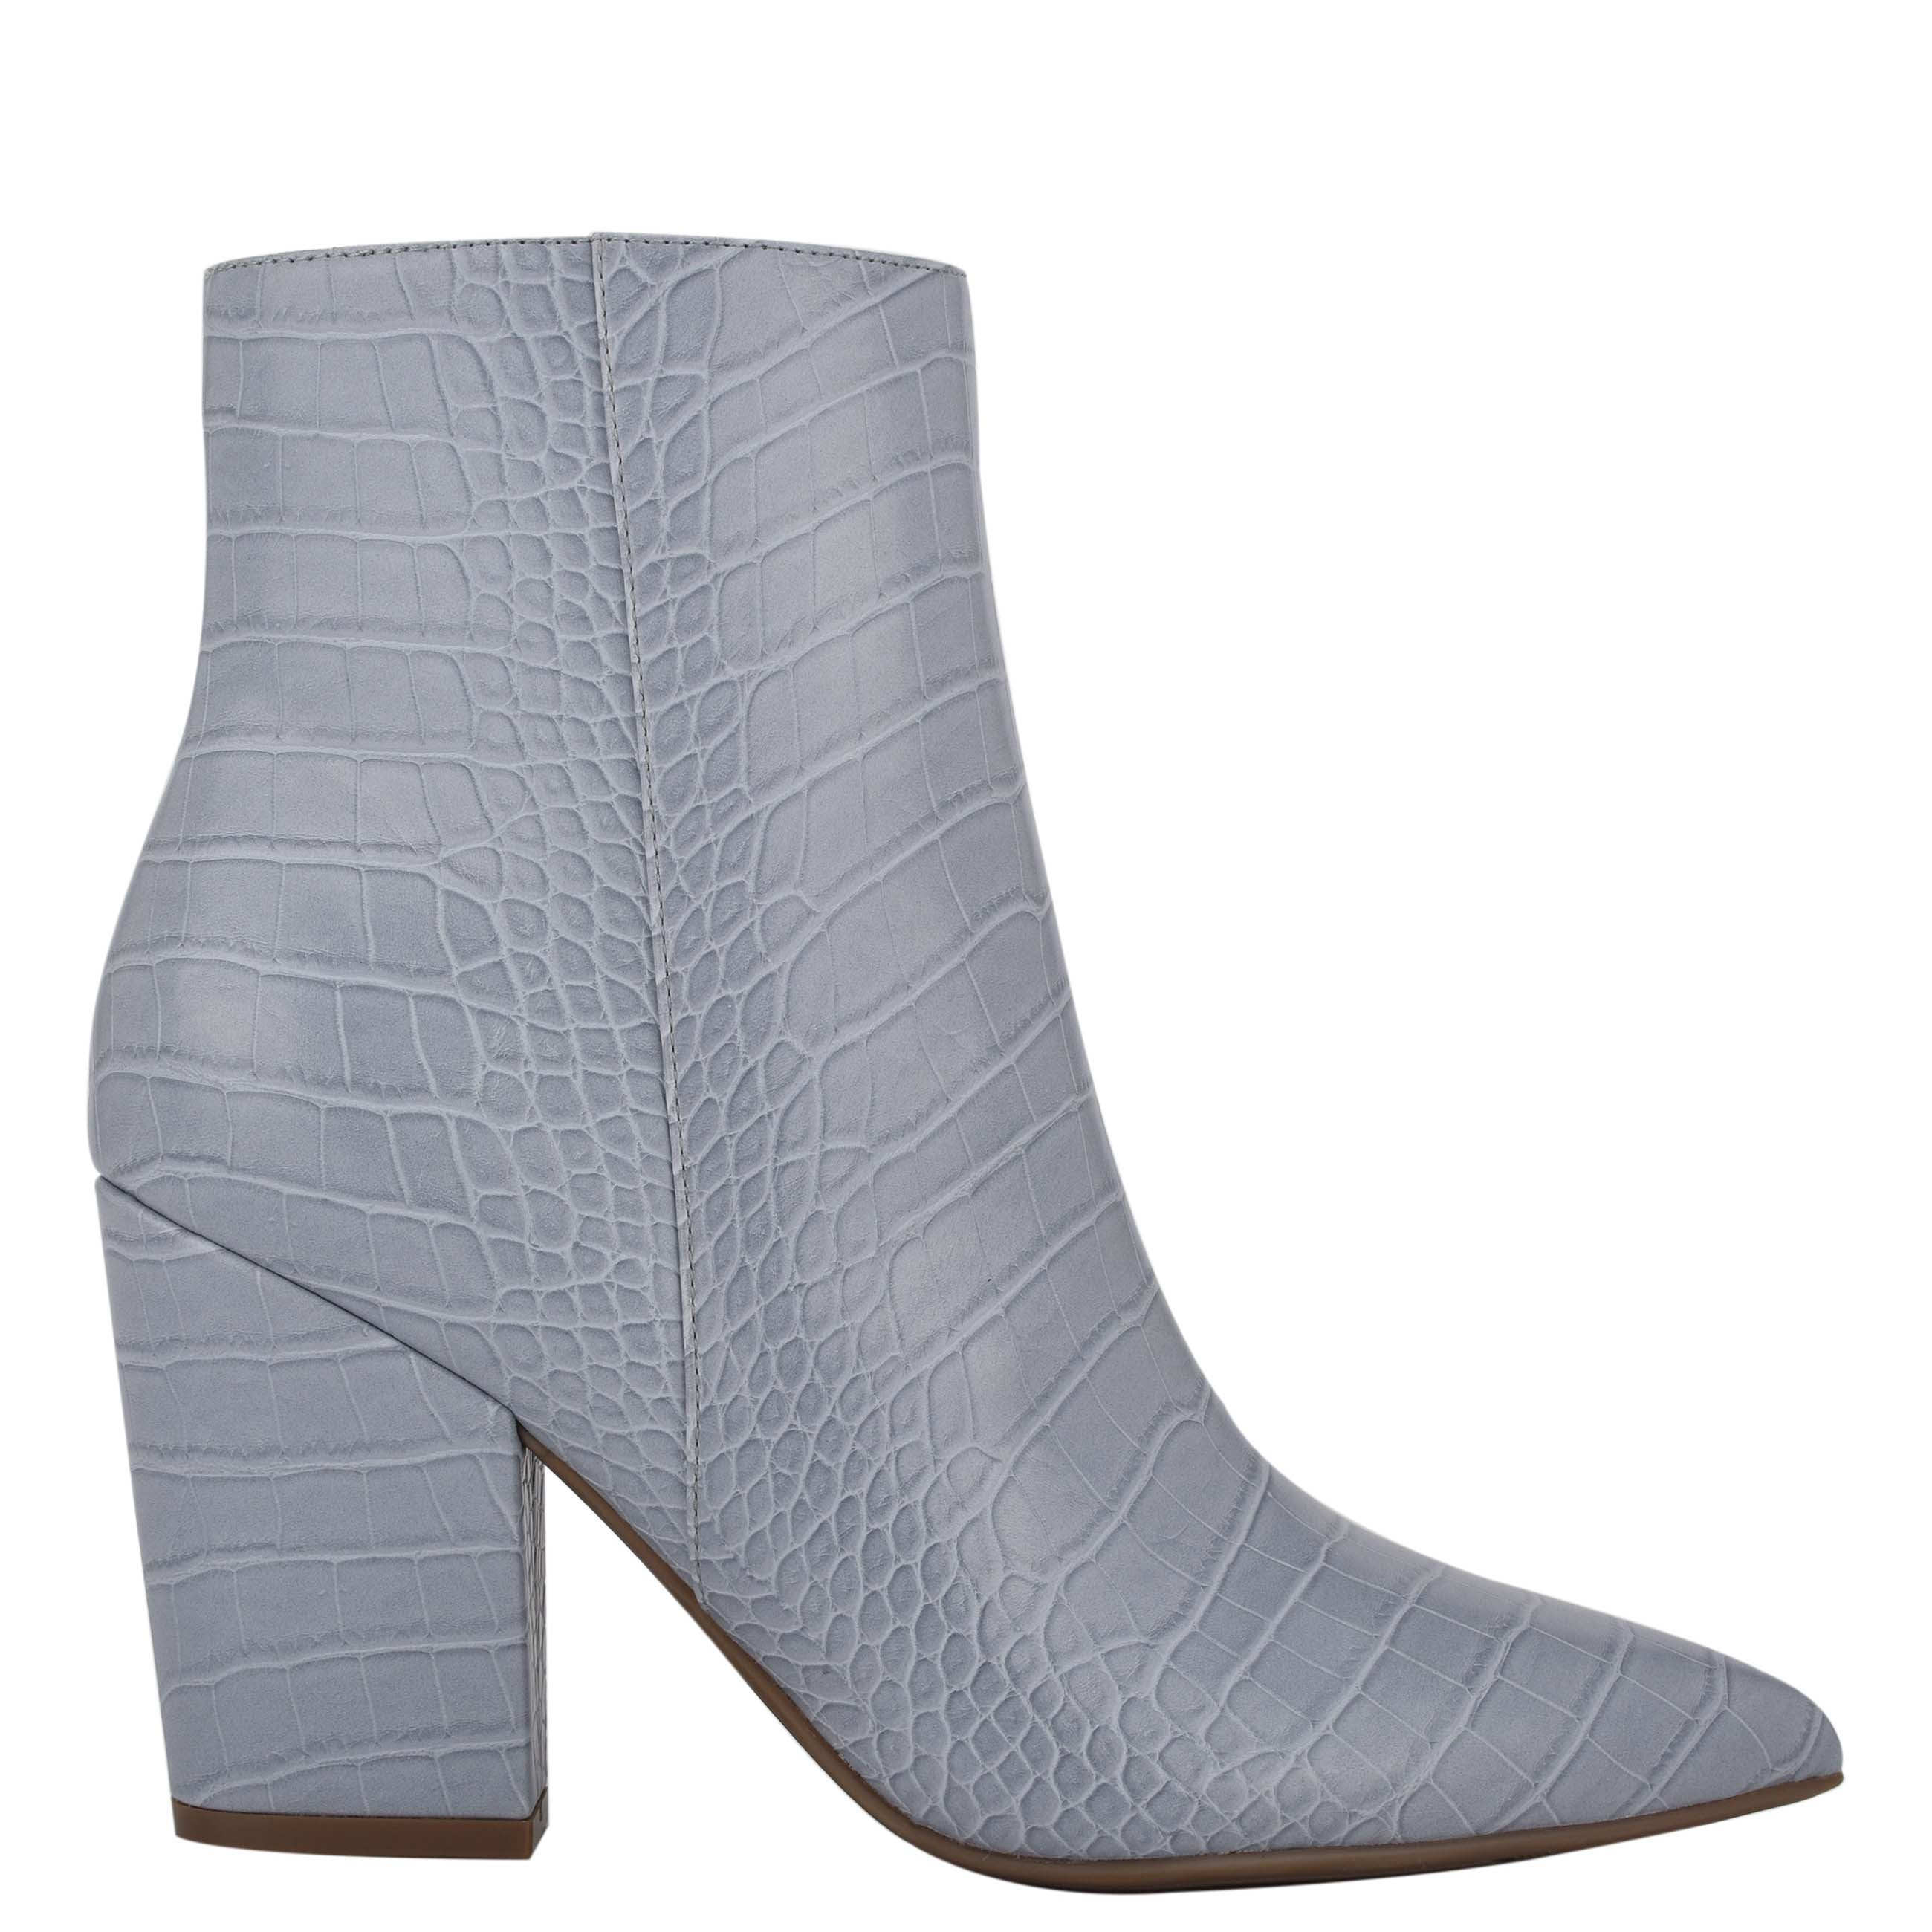 NINEWEST Gaba Heeled Booties